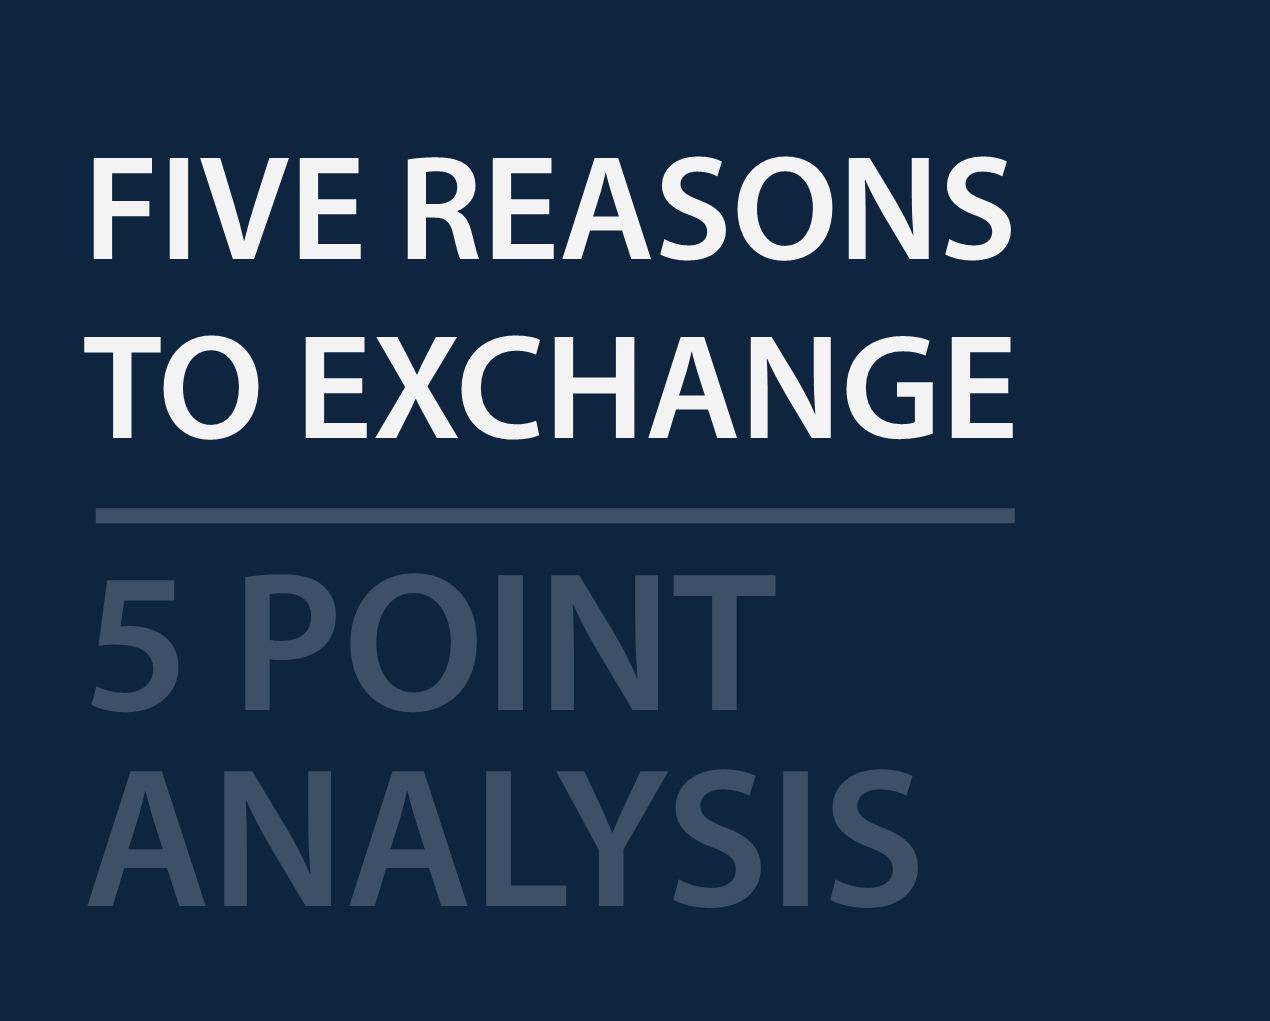 1031 exchanges essay Wk 7 discussion (section 1031 exchanges) – post 1  prime essay services , written from scratch, delivered on time, at affordable rates  get a quote.